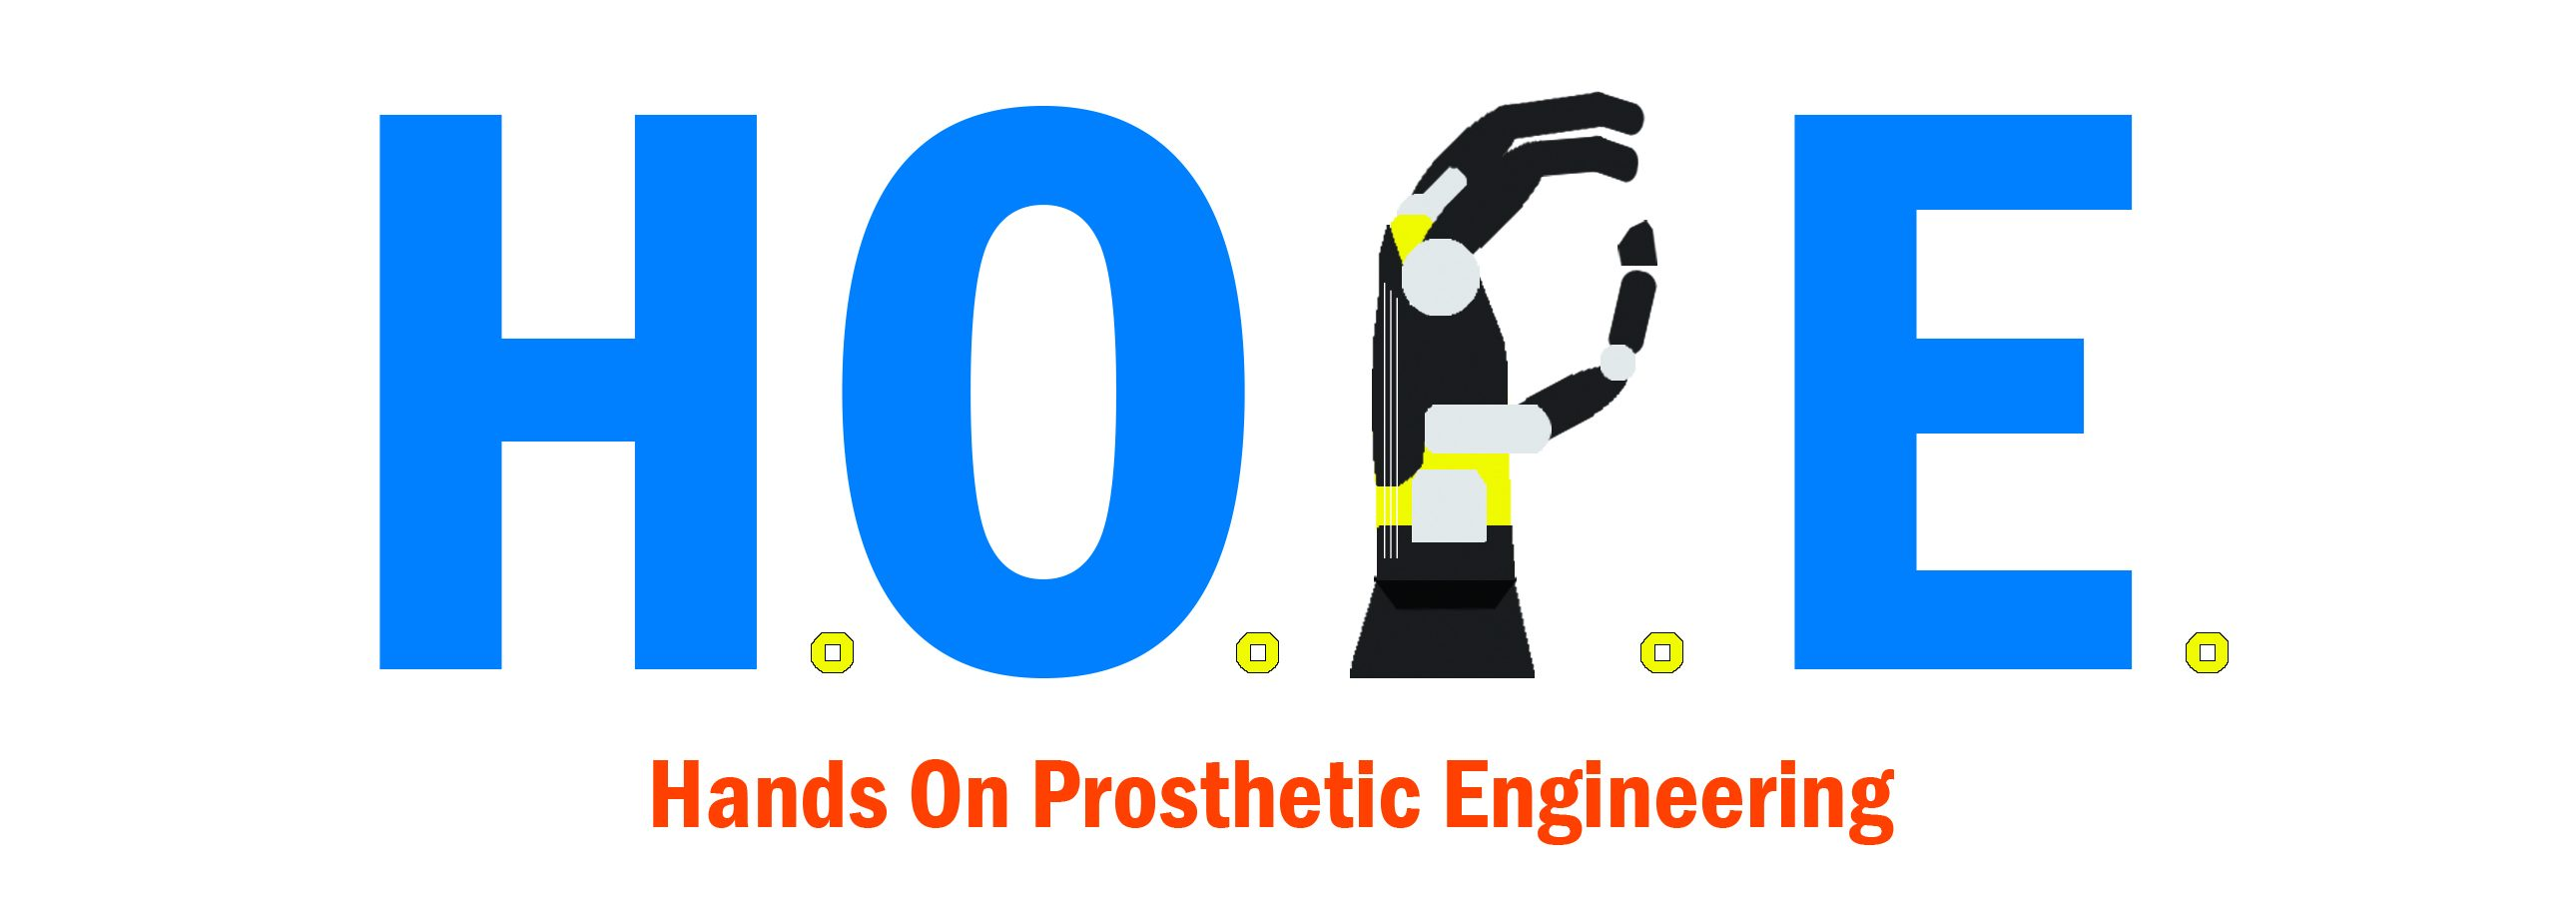 Hands on Prosthetic Engineering